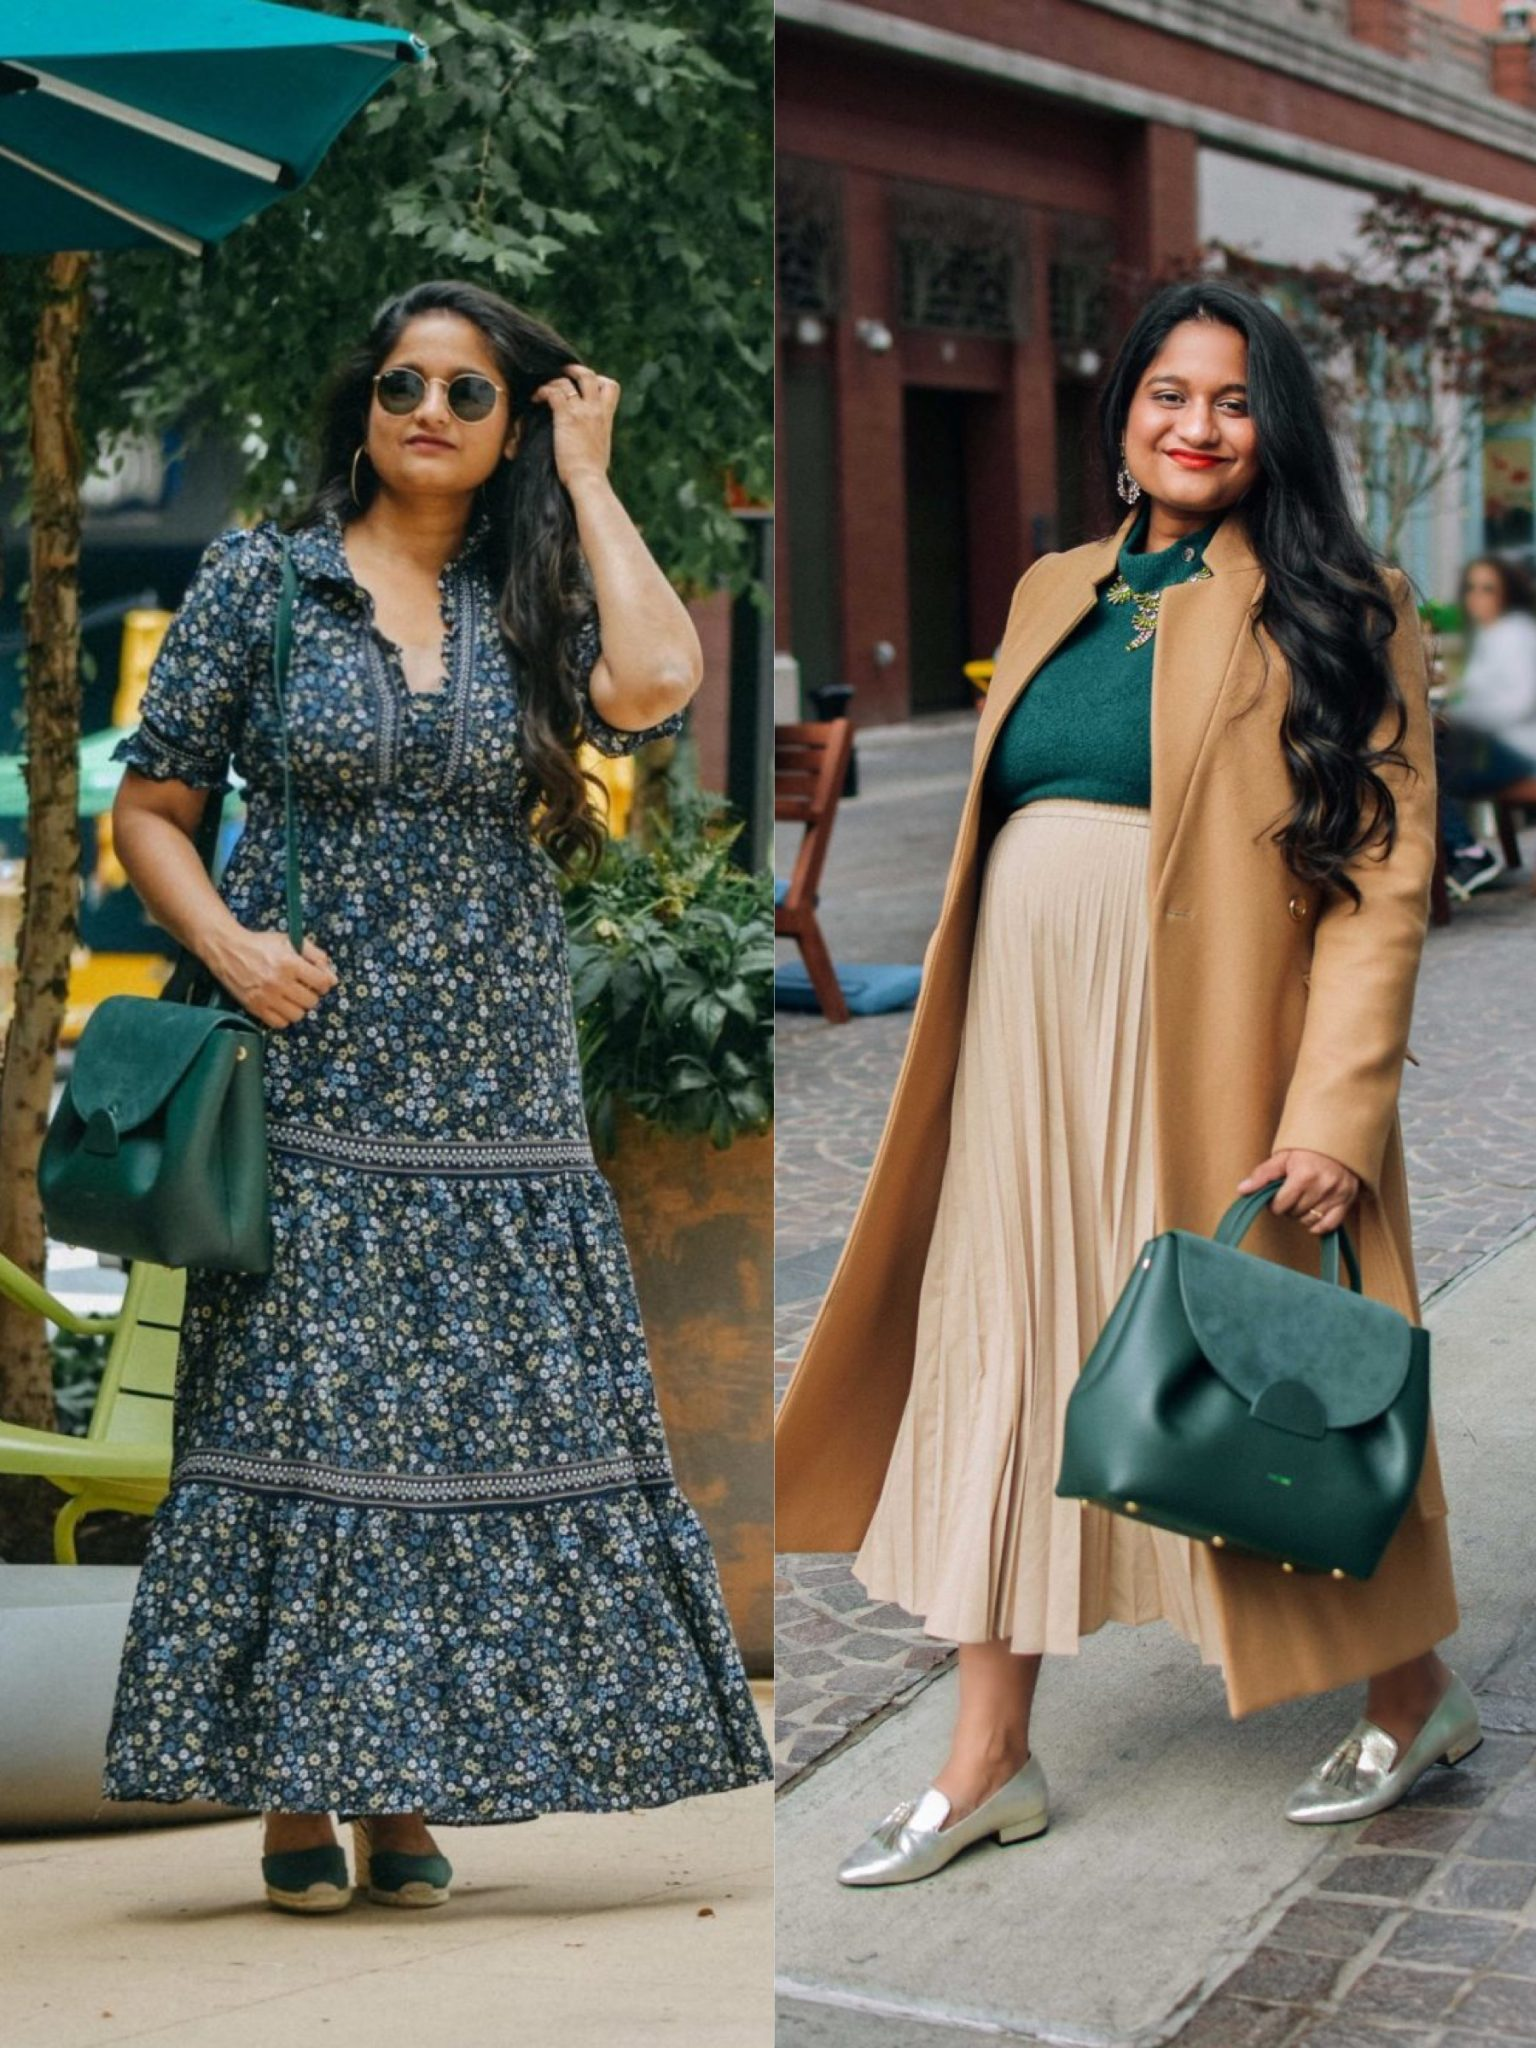 Polene Numero un Bag review and outfit ideas |   Handbags Under $500 by popular Maryland modest fashion blog, Dreaming Loud: collage image of a woman holding a Polene Numero Un in Trio green.